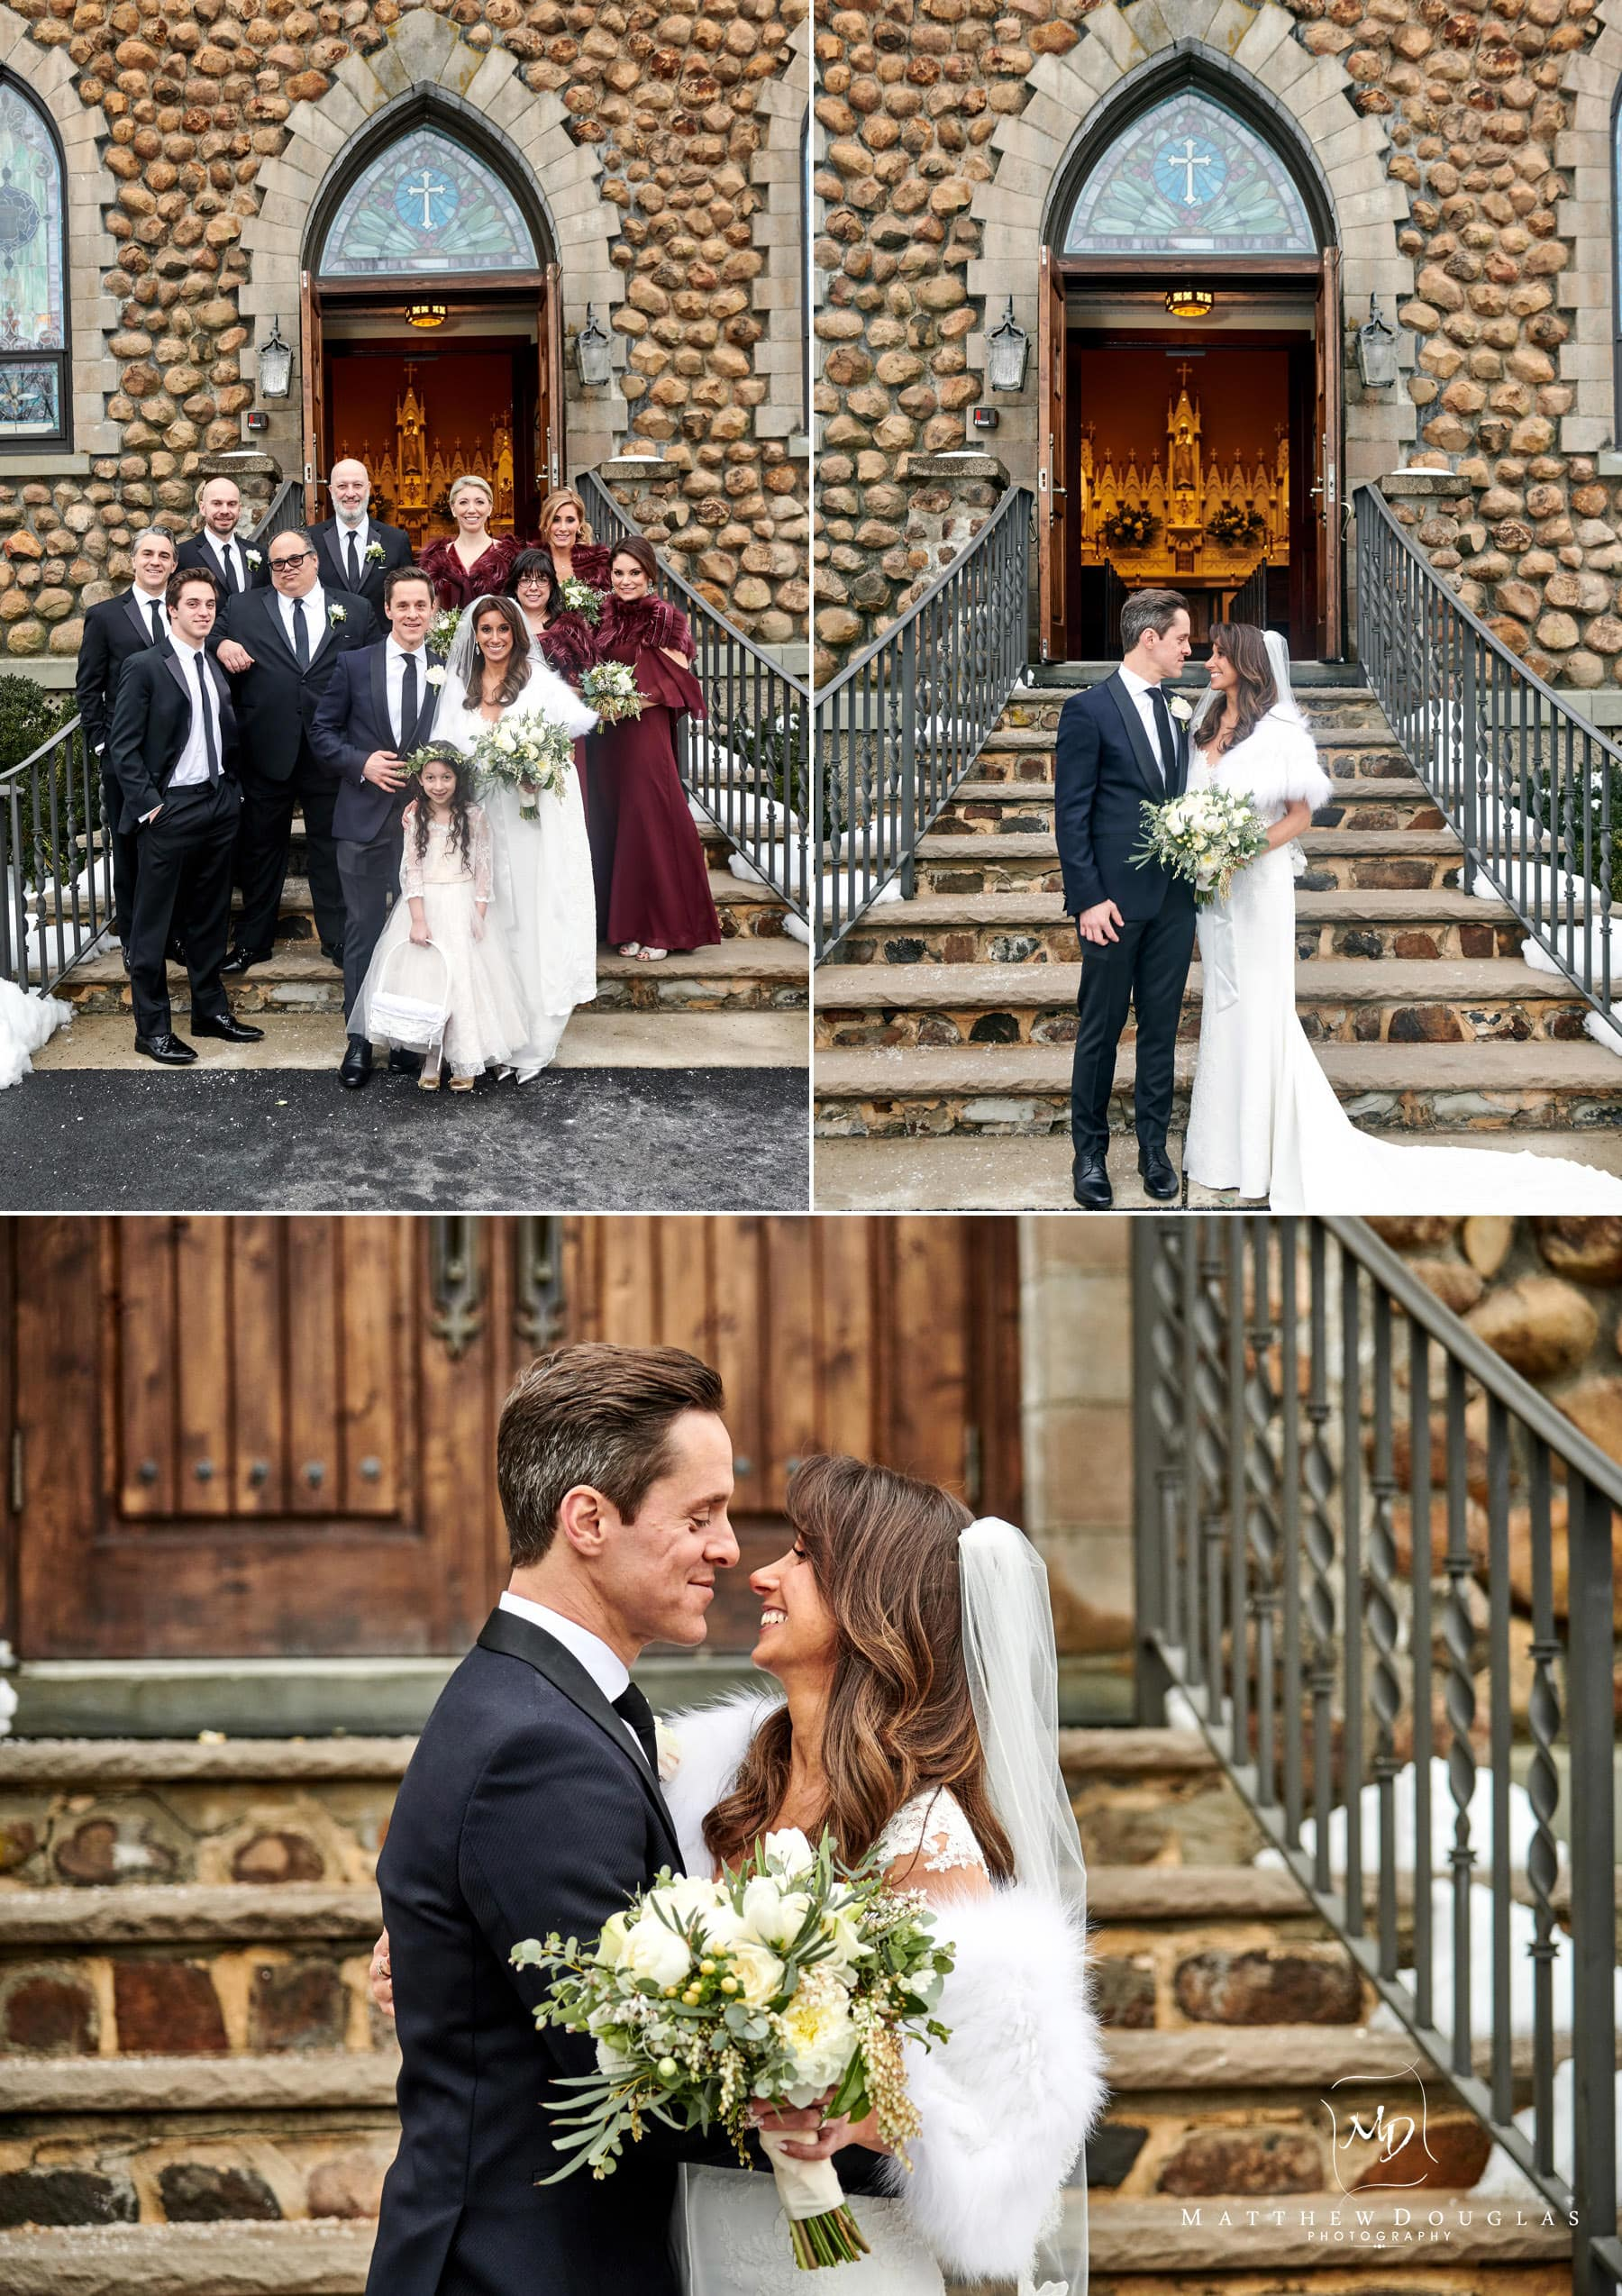 bridal party photos on church steps